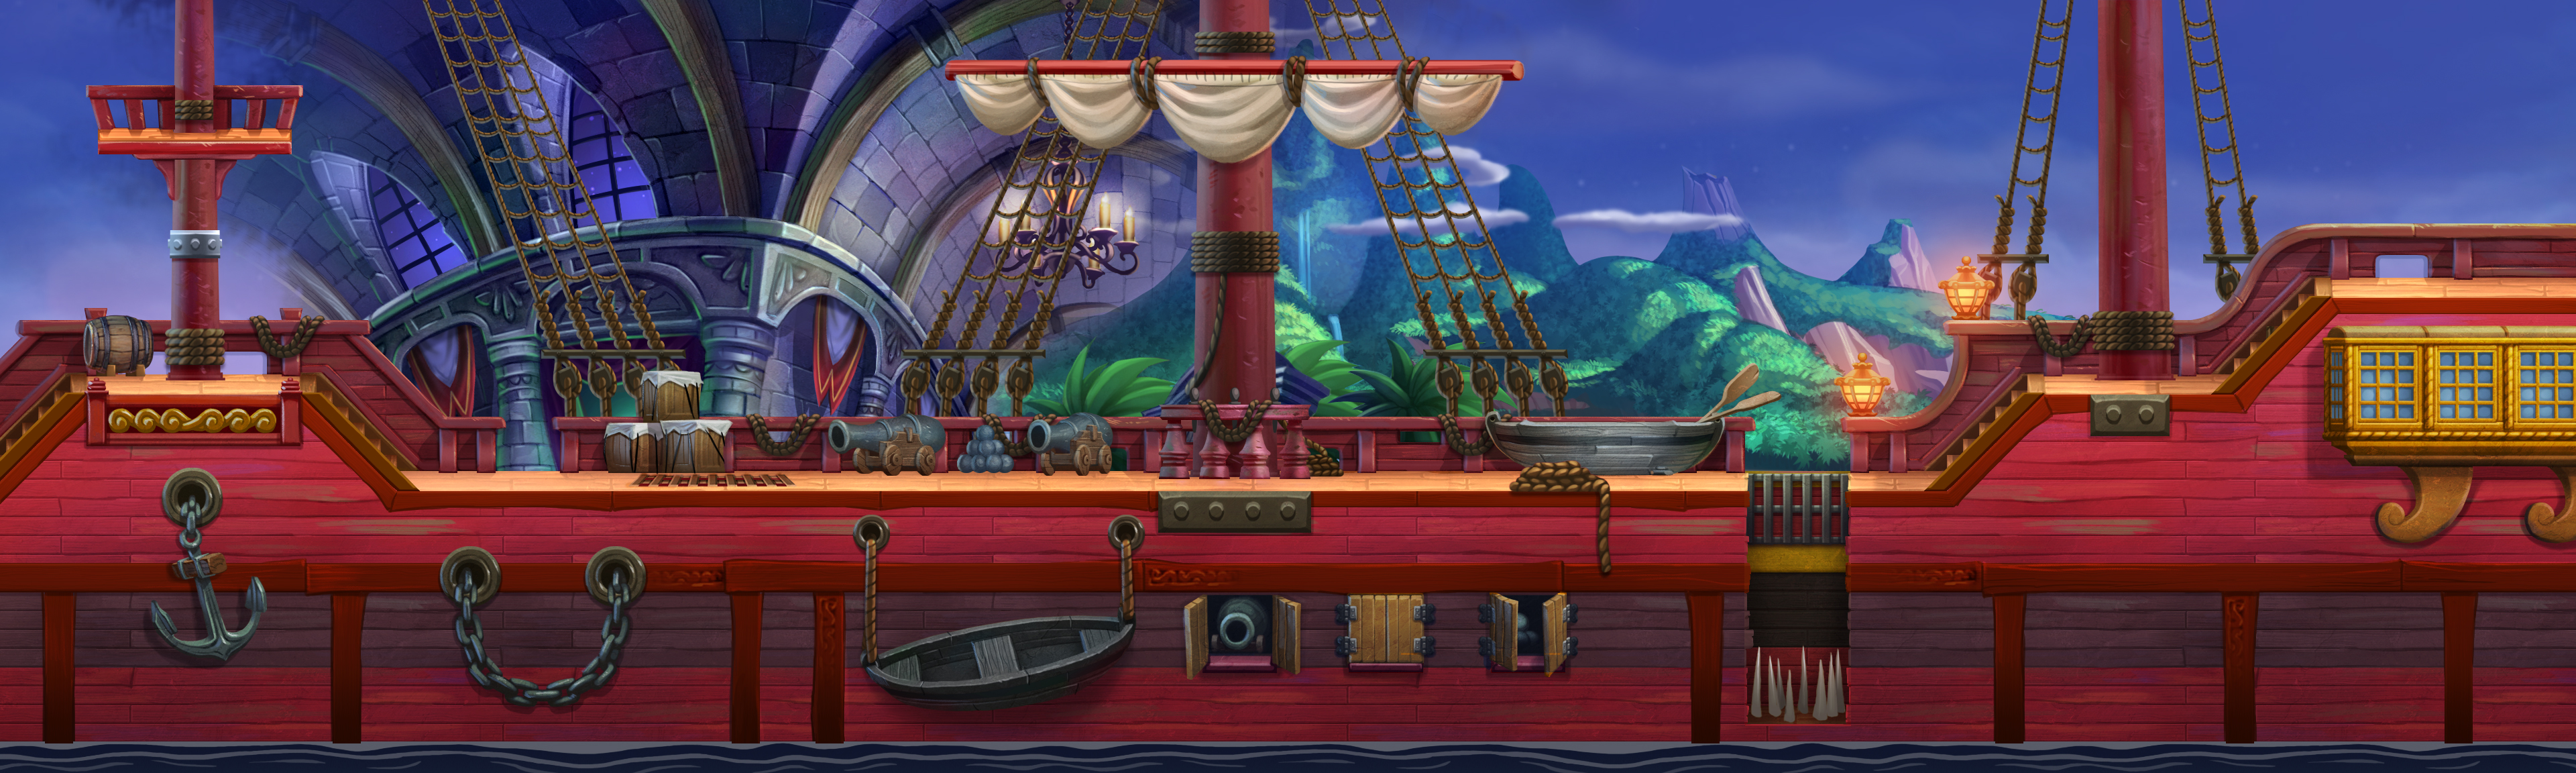 epicmickeyillusion3ds-5